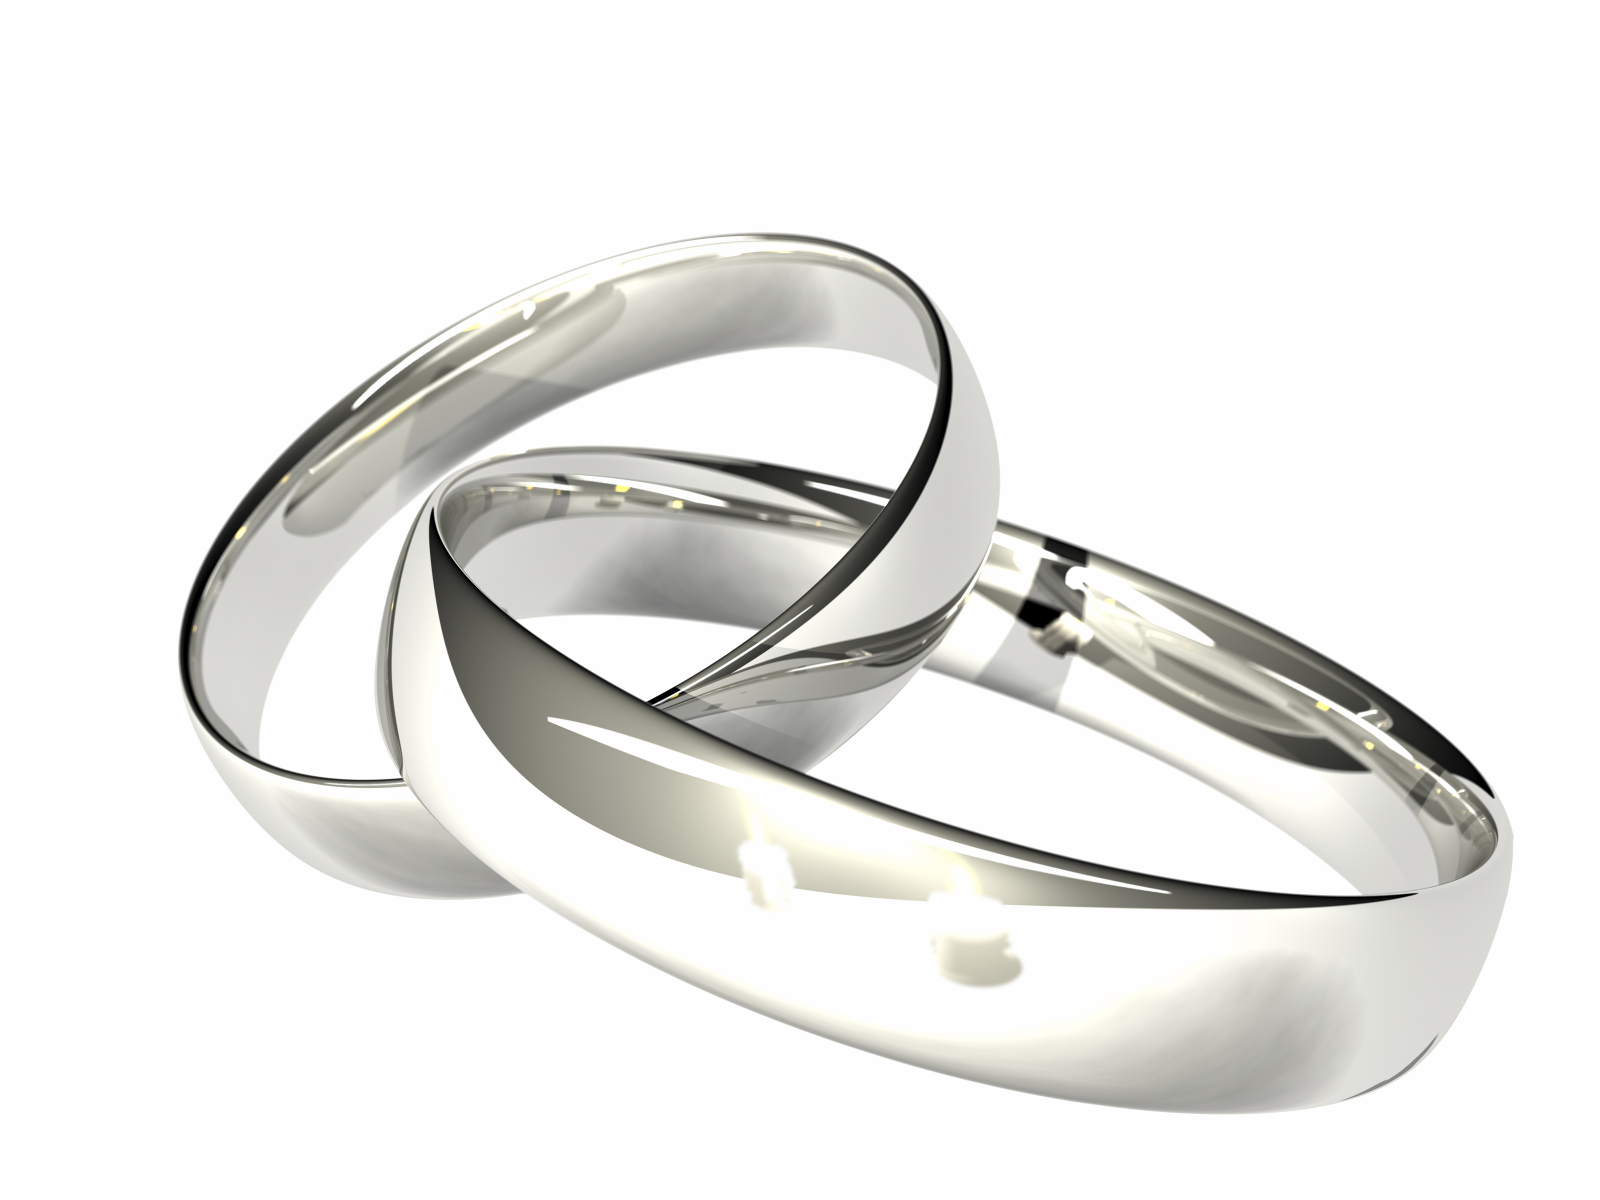 Free Silver Wedding Rings Png, Download Free Clip Art, Free.